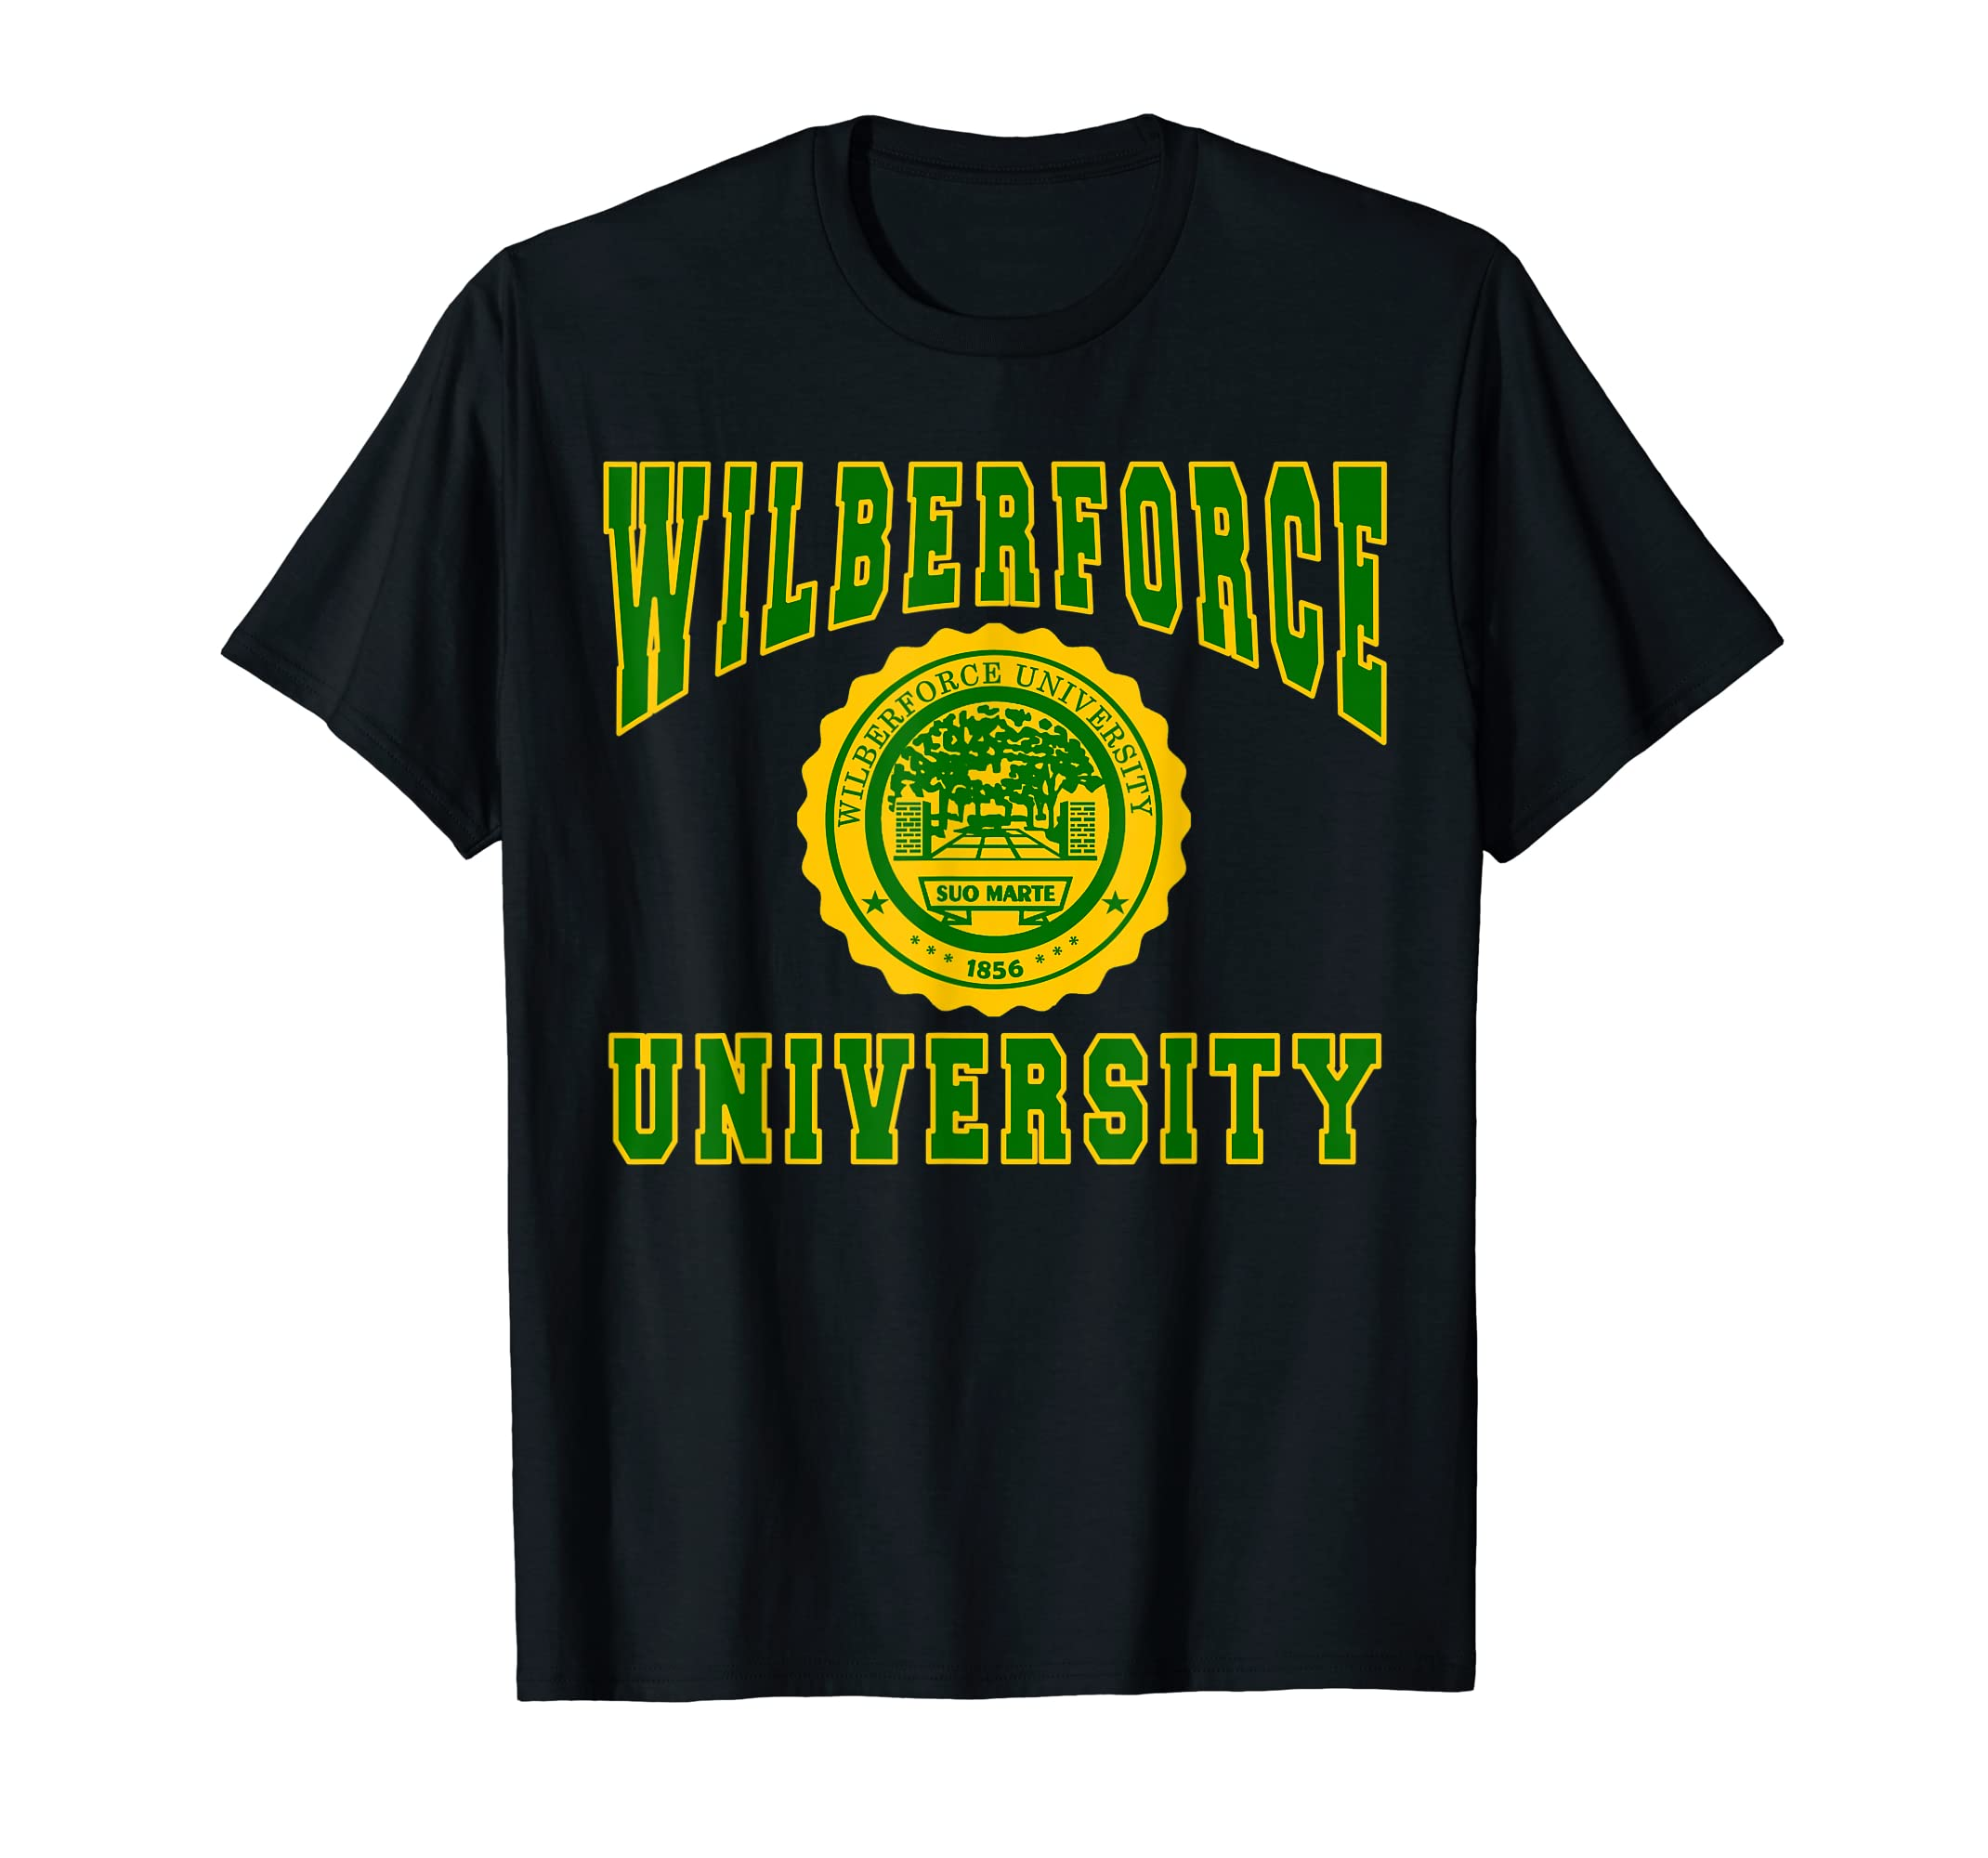 Wilberforce 1856 University Apparel - T shirt-Men's T-Shirt-Black